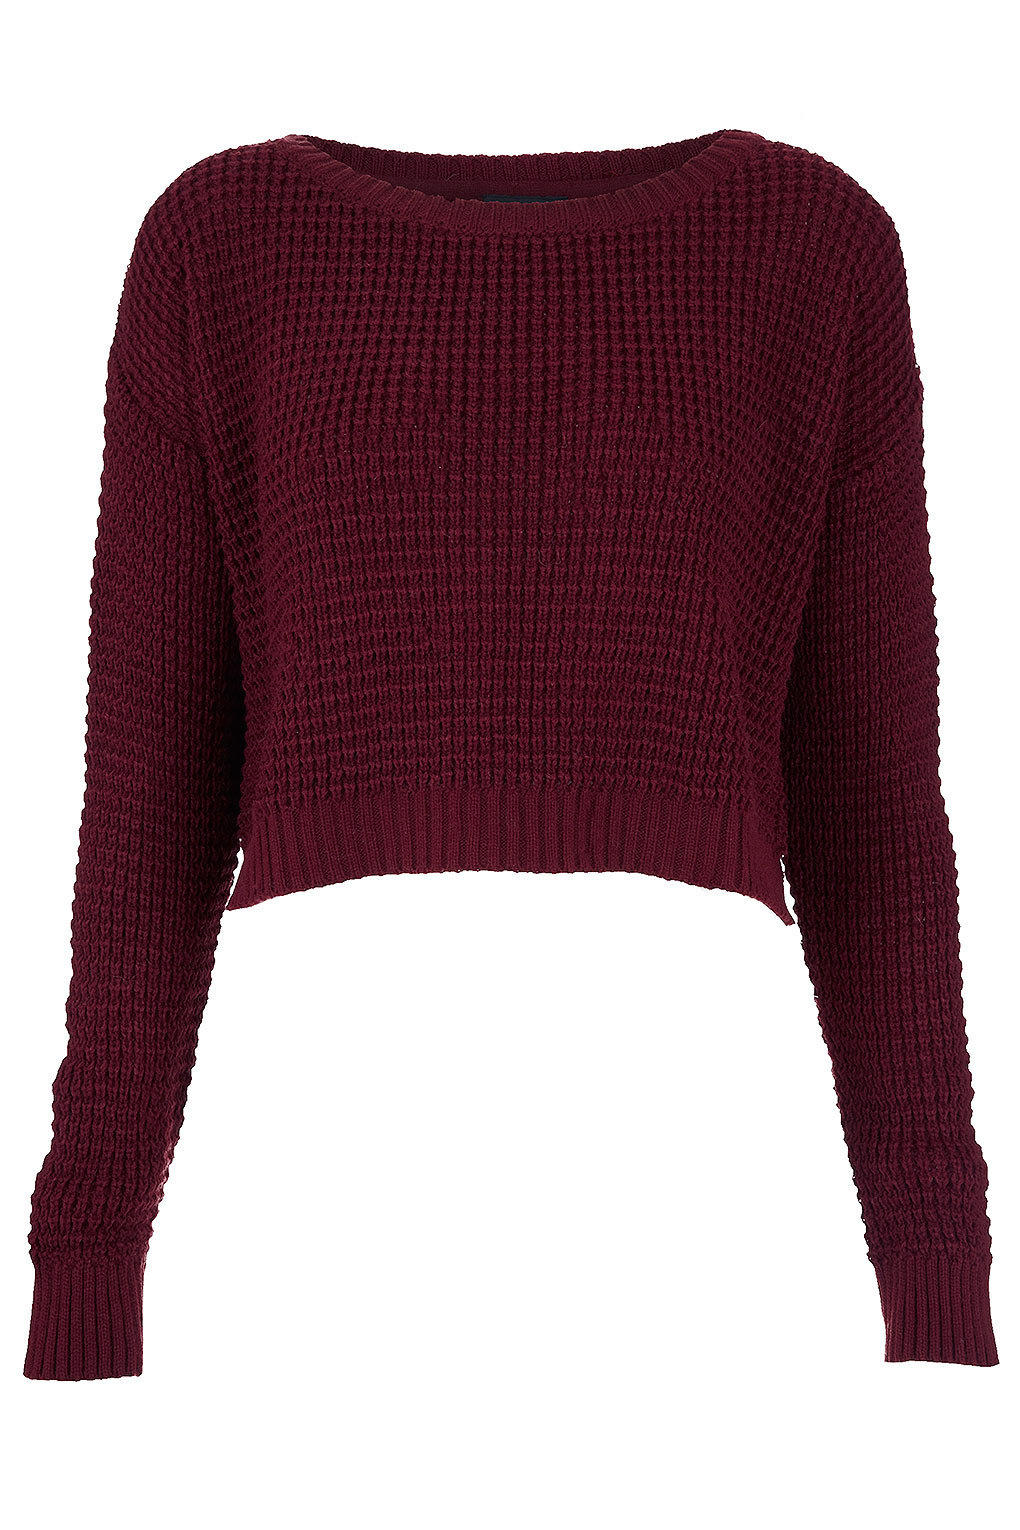 Cropped Jumper Knitting Pattern : Knitted Textured Crop Jumper - Knitwear - from TOPSHOP Epic